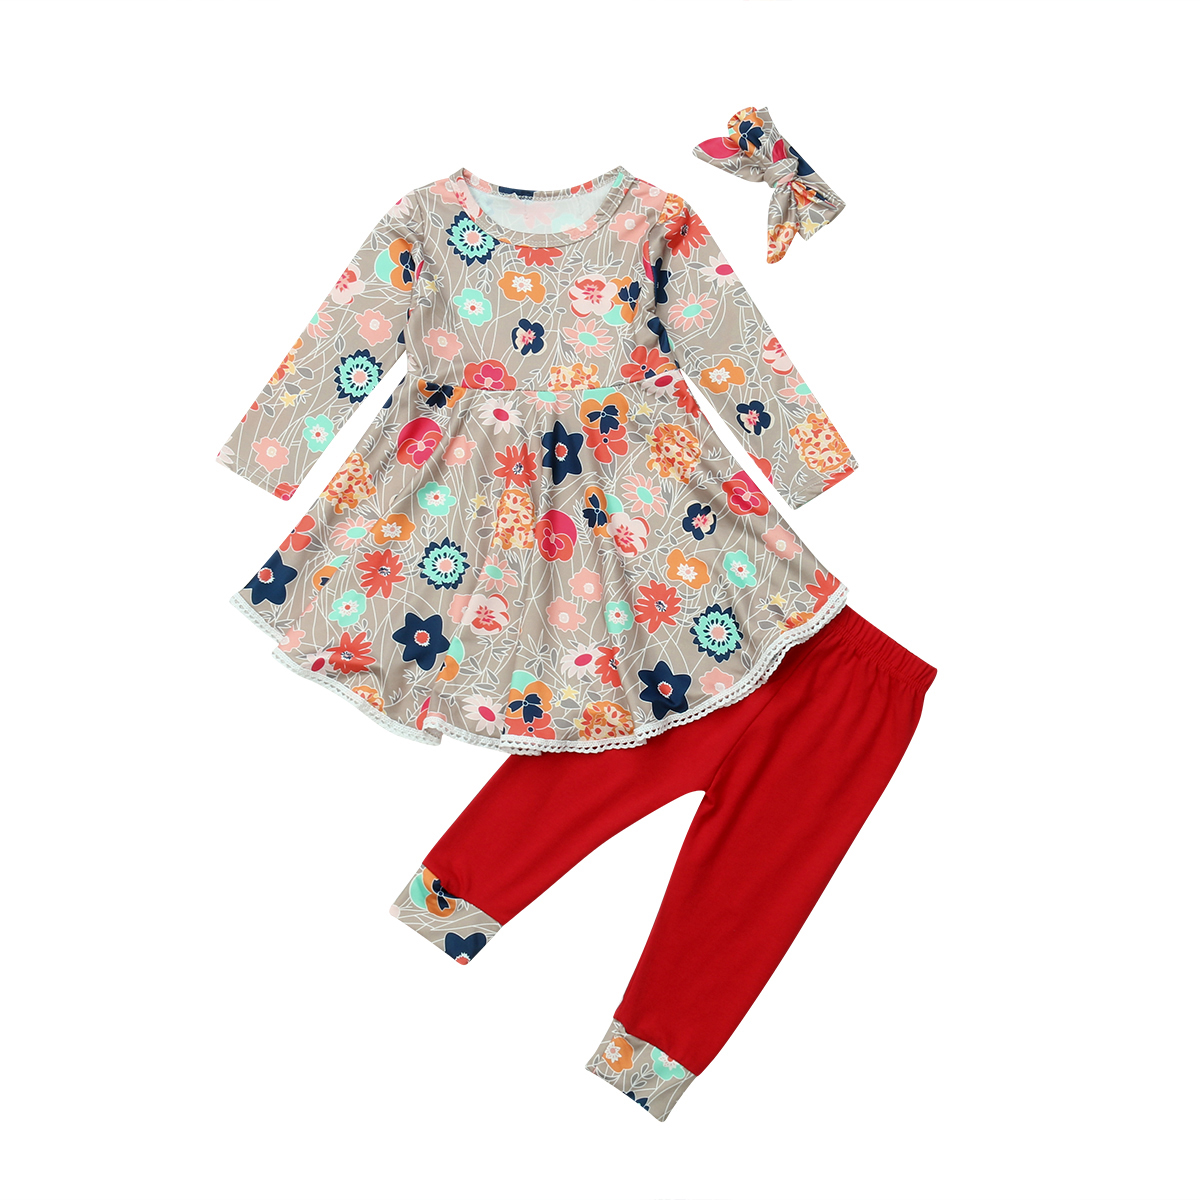 Christmas Toddler Kids Baby Girl Clothing Set Flower Children Clothes Long Sleeve Tunic Pants Autumn Spring Outfits DNOV free shipping children s clothing spring autumn girl leisure flower pattern girl suit long sleeve sweatshirt pants set